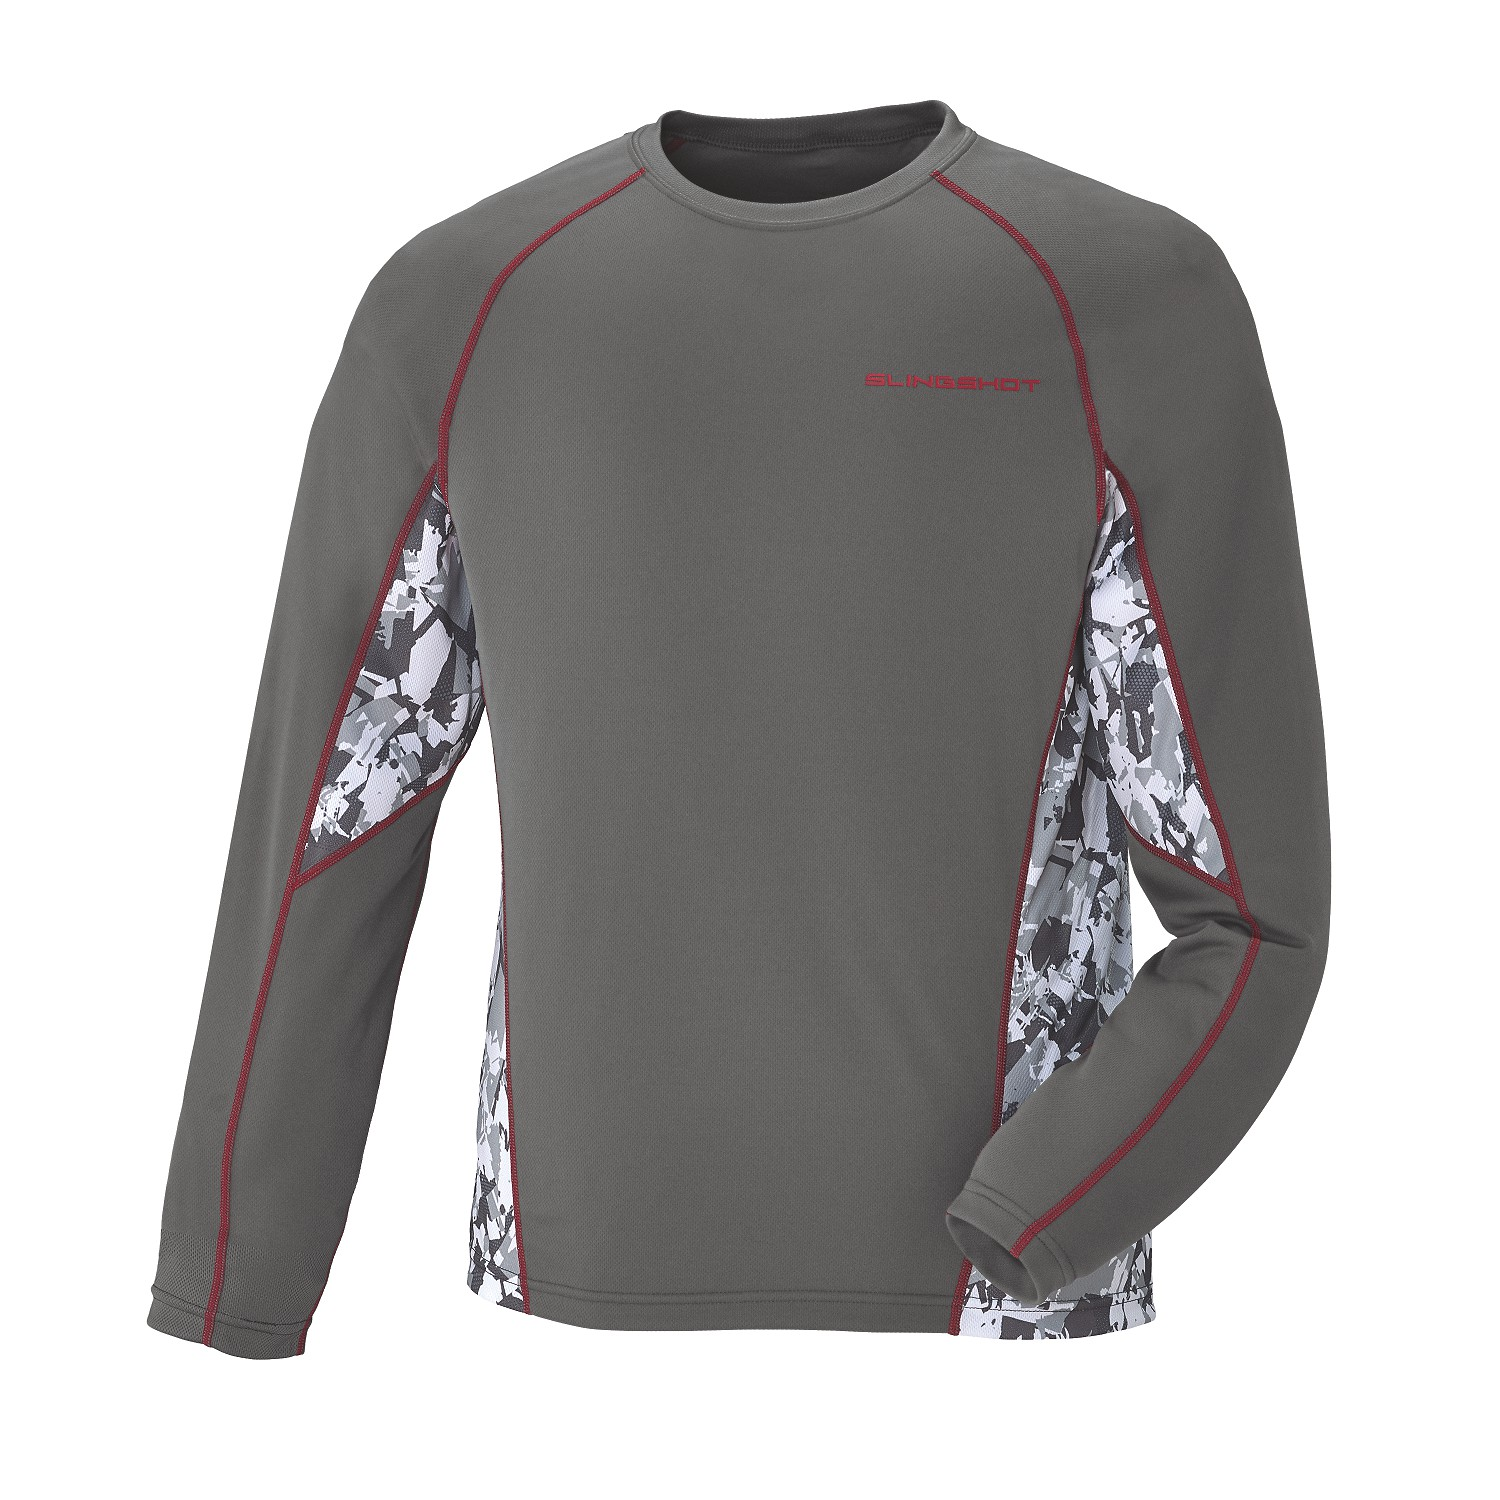 Men's Long-Sleeve Cooling Shirt with Slingshot Logo